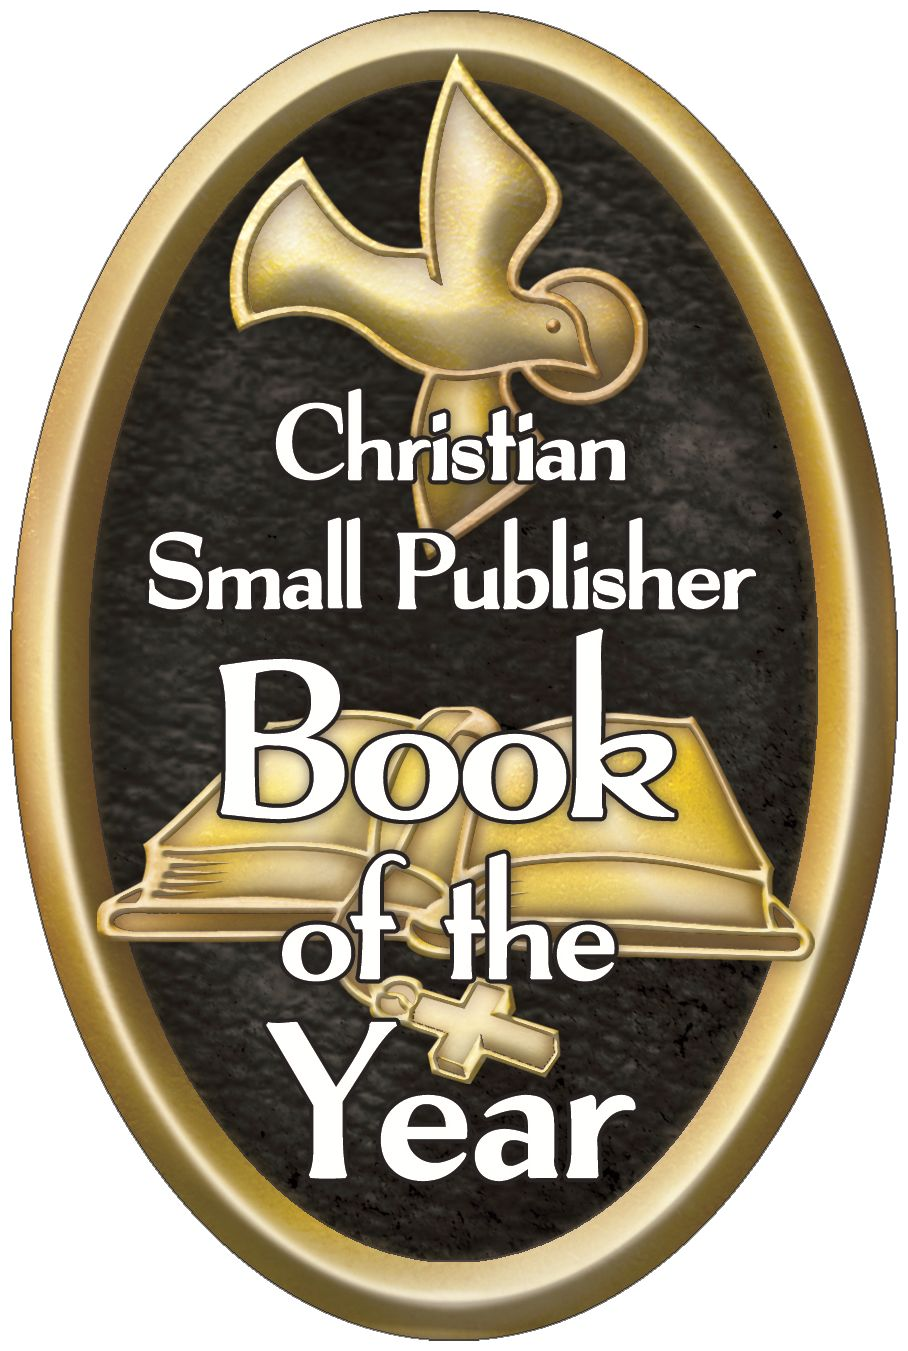 Christian Small Publisher 2016 Book of the Year Award